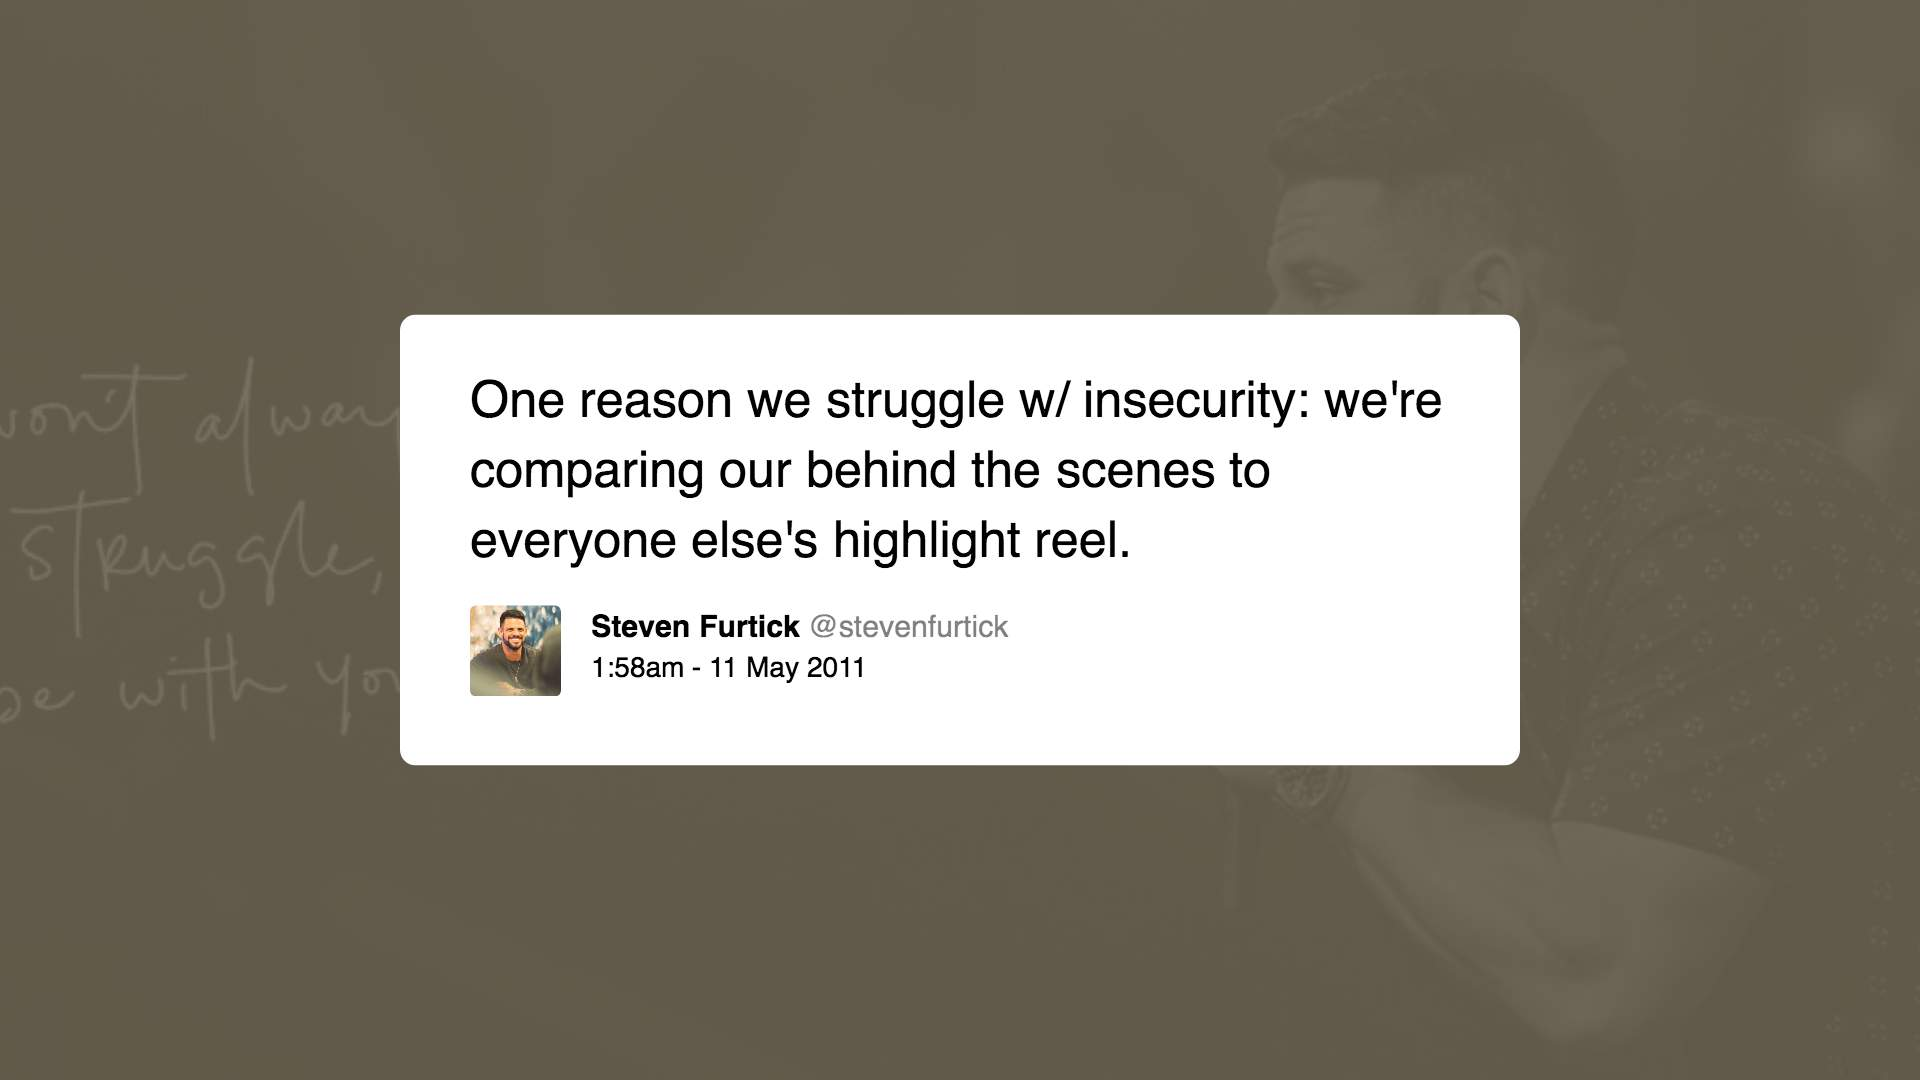 One reason we struggle w/ insecurity: we're comparing our behind the scenes to everyone else's highlight reel.